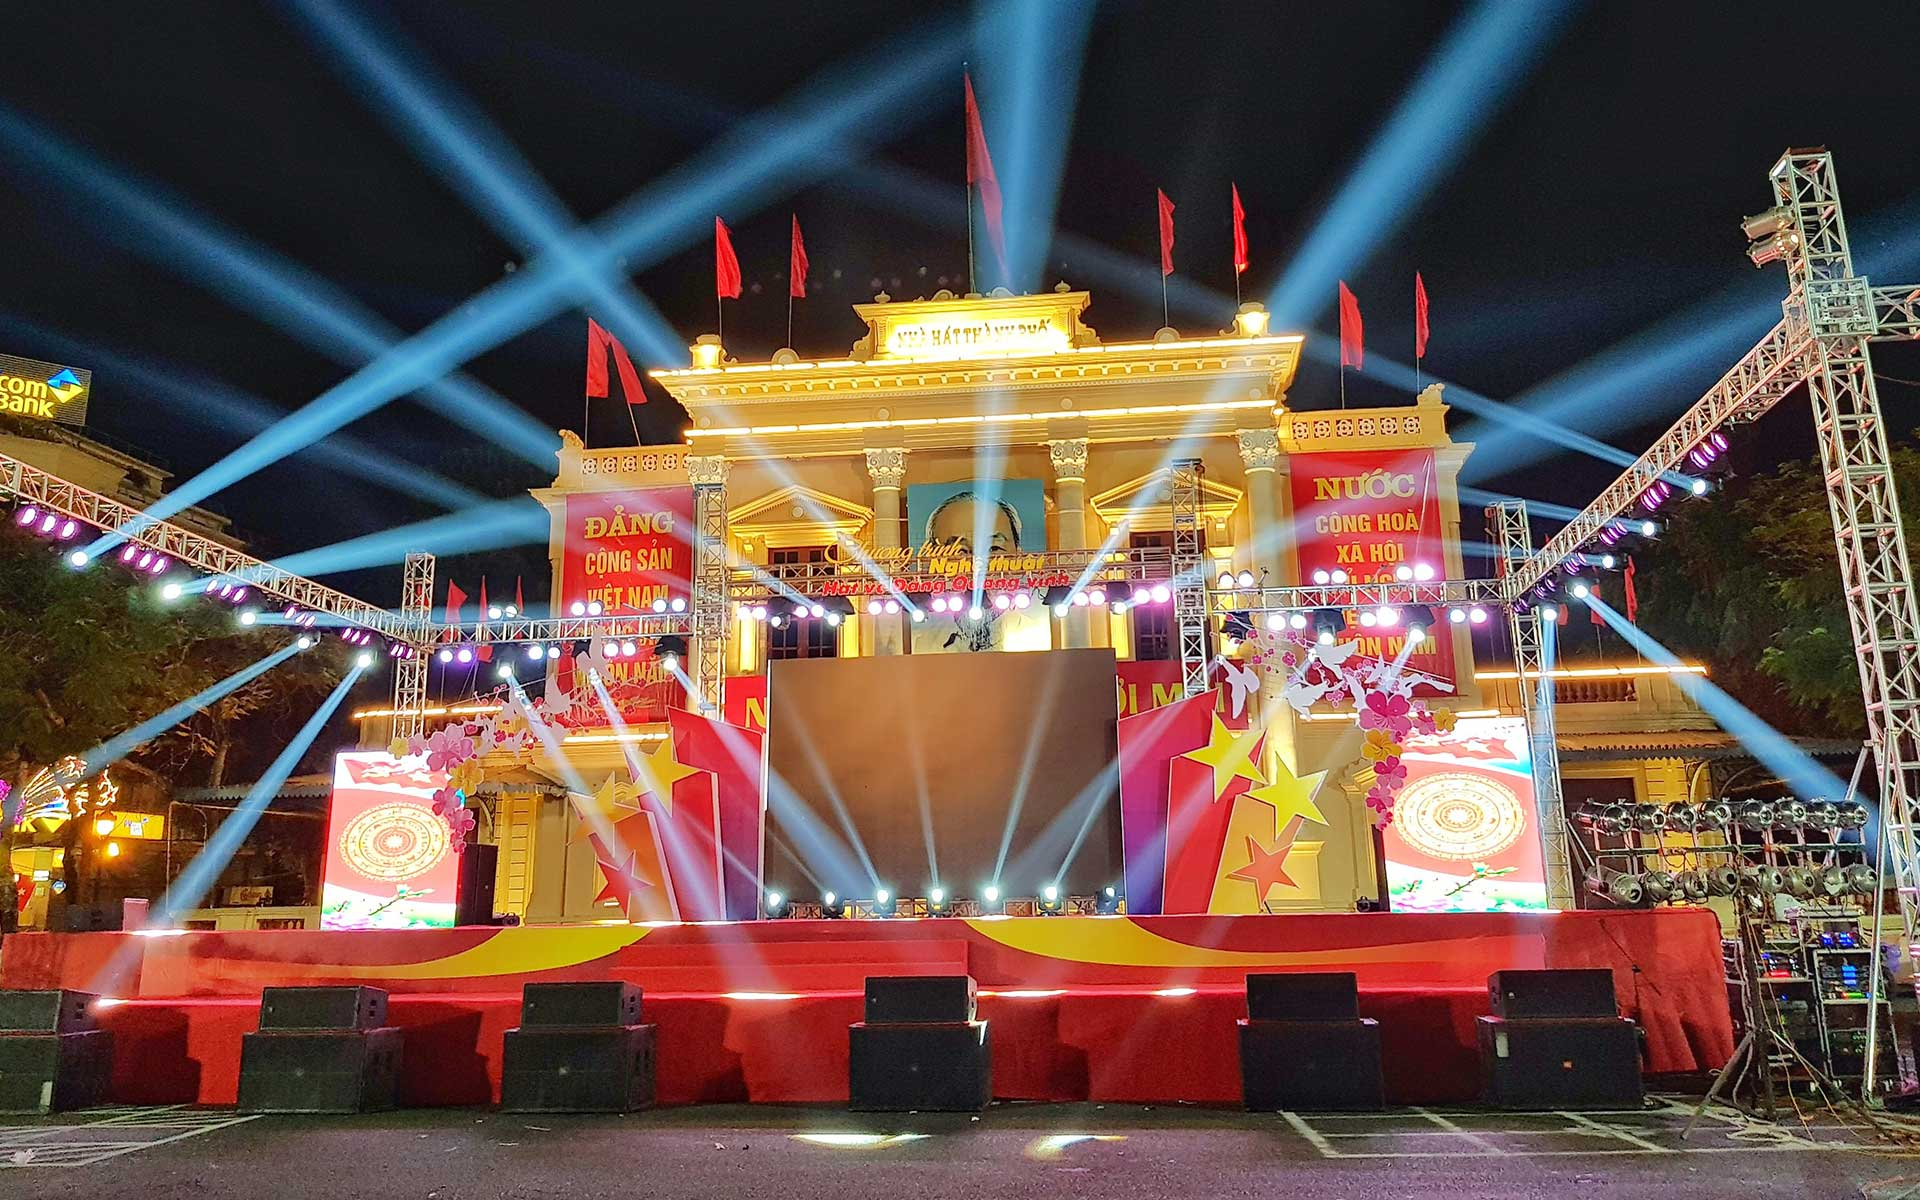 an event was held in front of Hai Phong Opera House